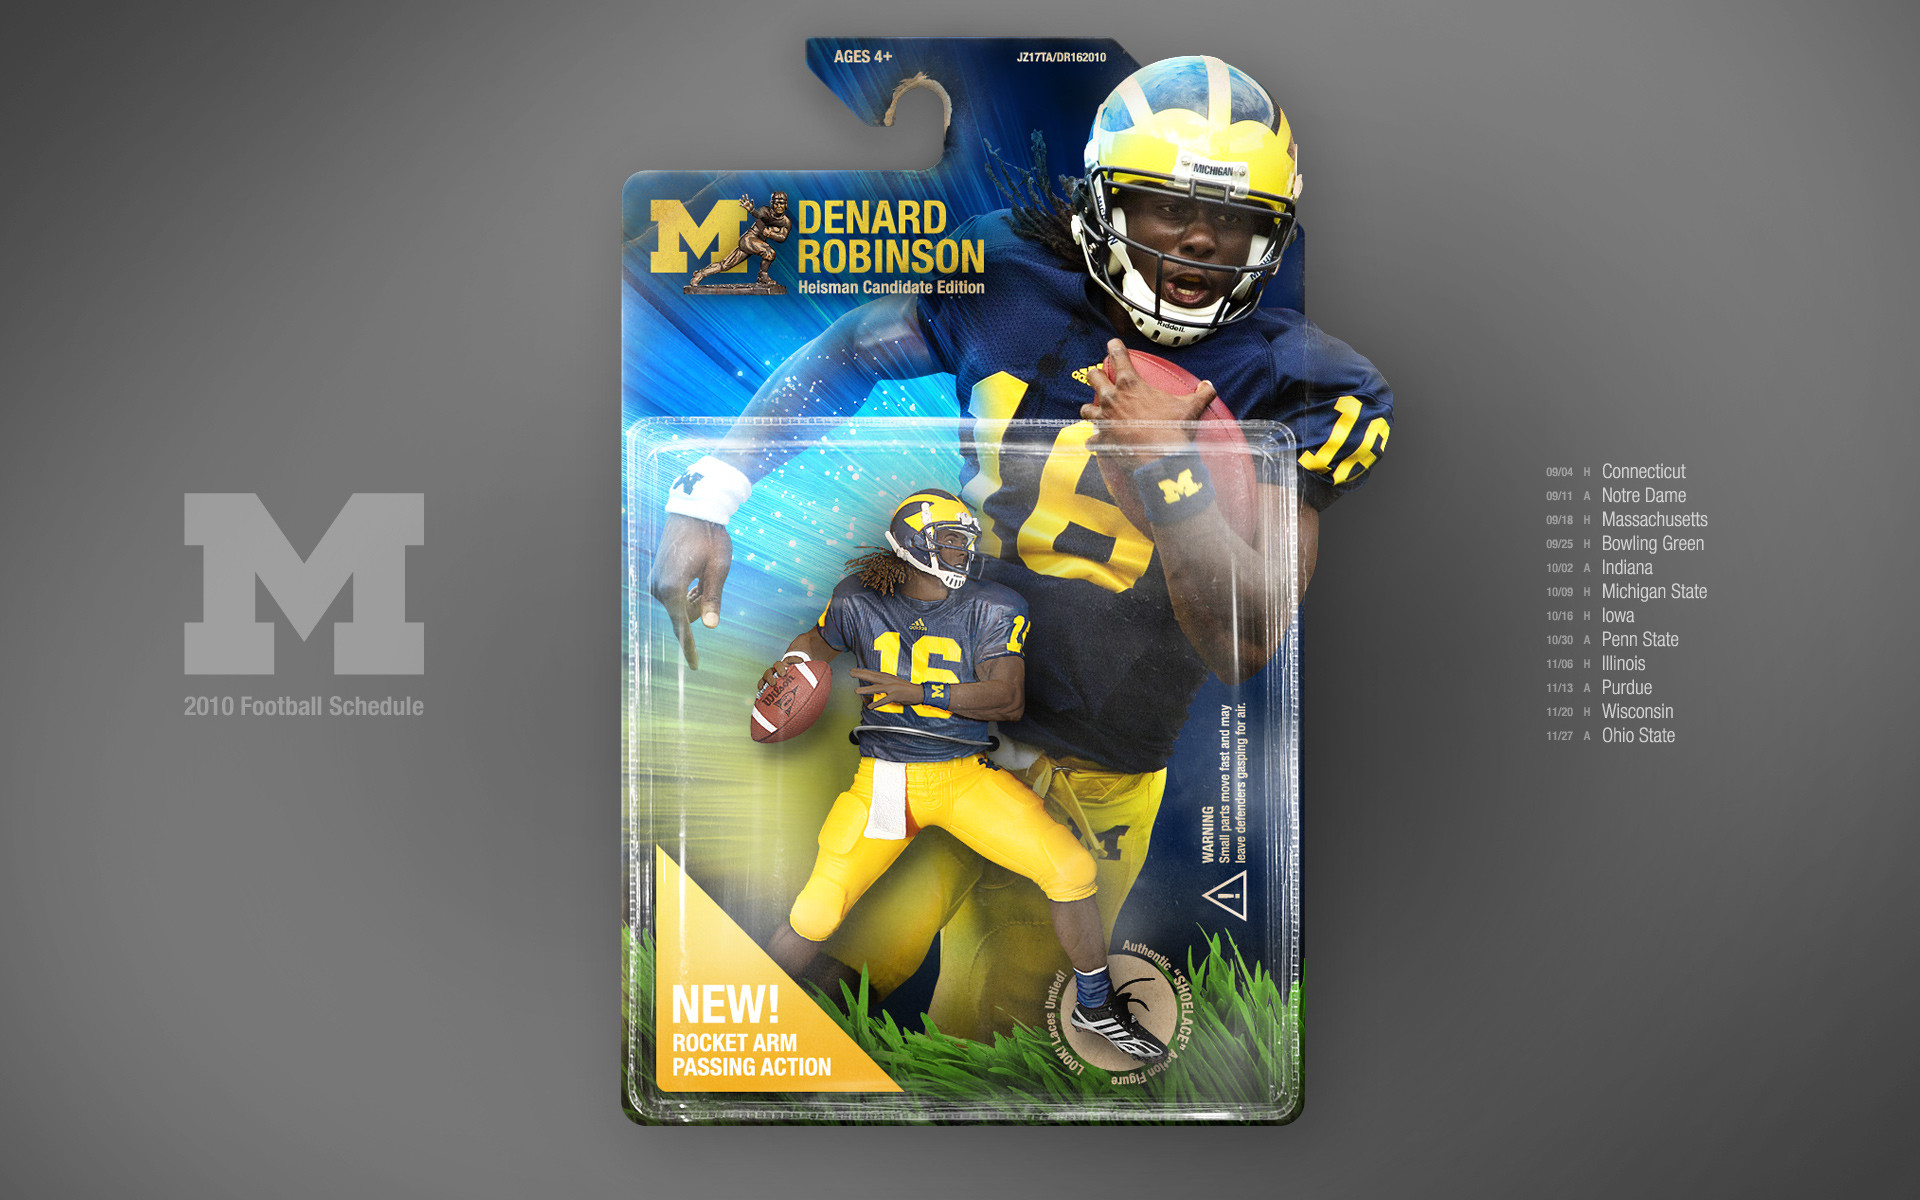 1920x1200 OT: Denard in Plastic?! That is one bad ass action figure!